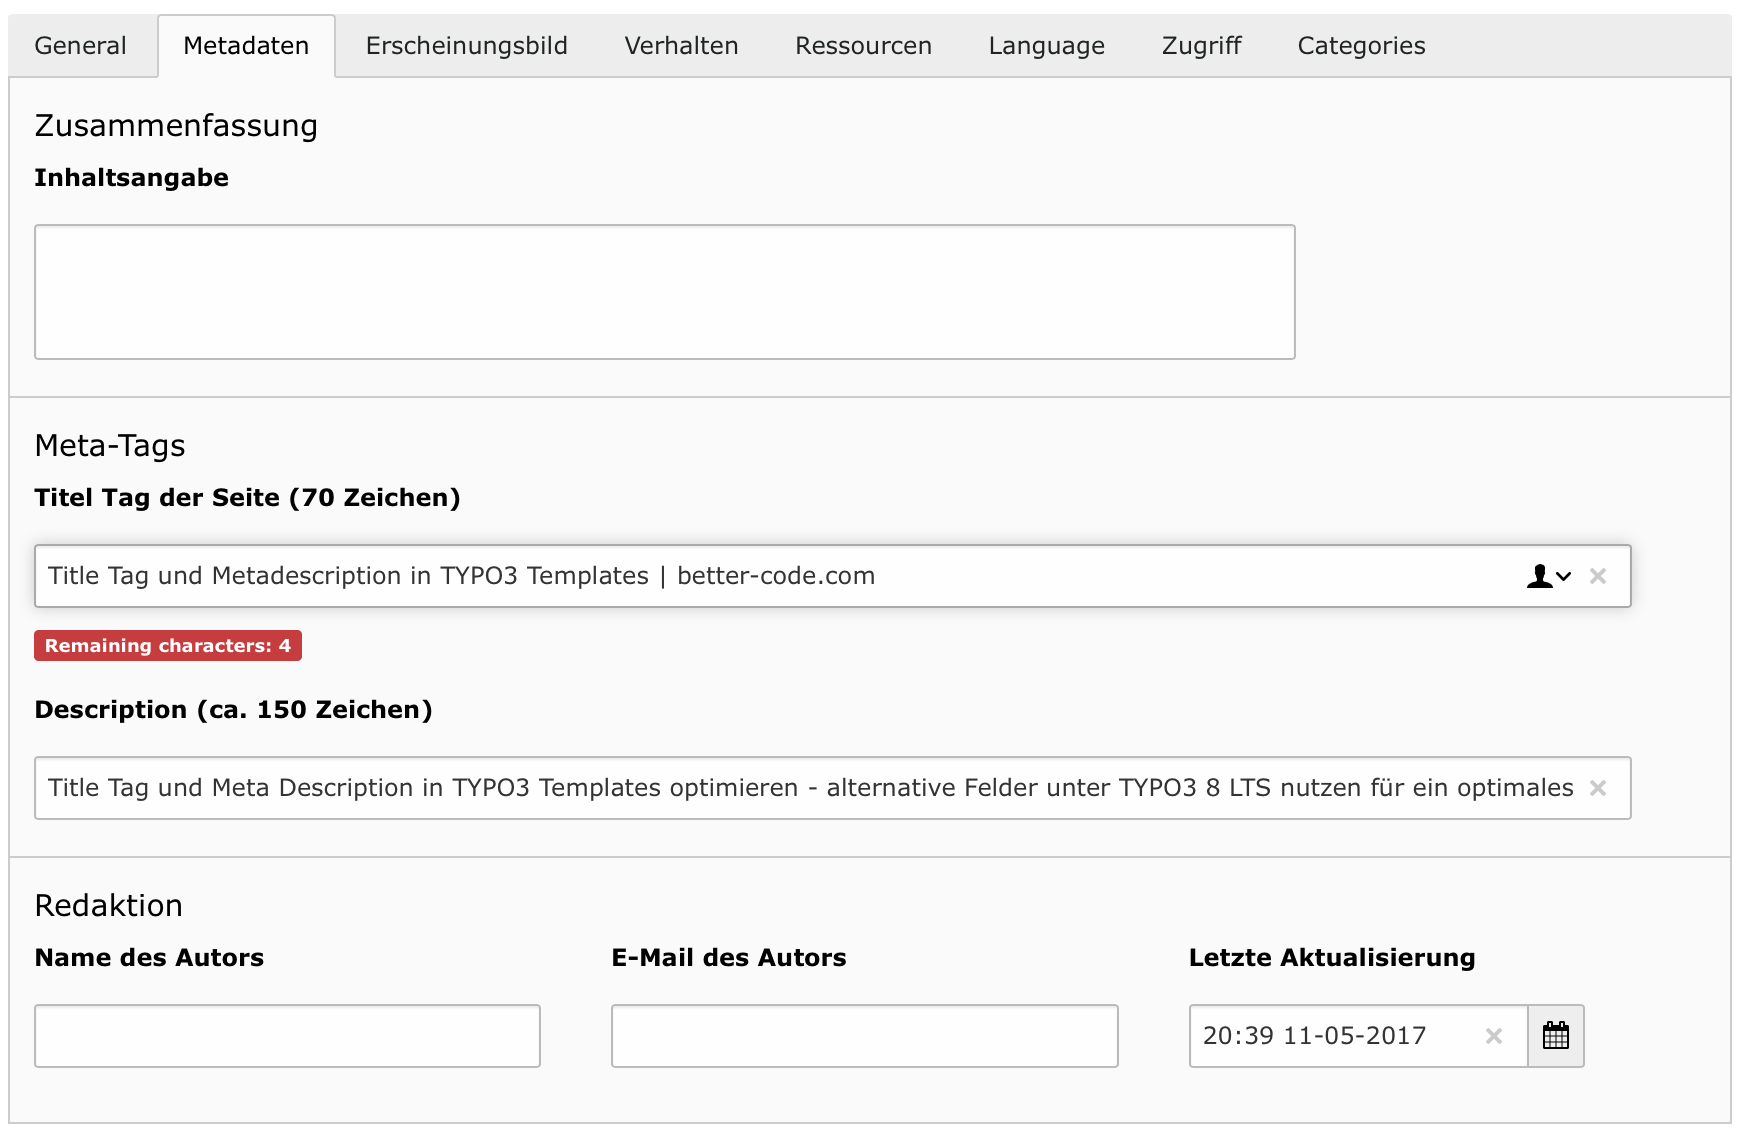 e88df5d73 Title Tag und Metadescription in TYPO3 Templates